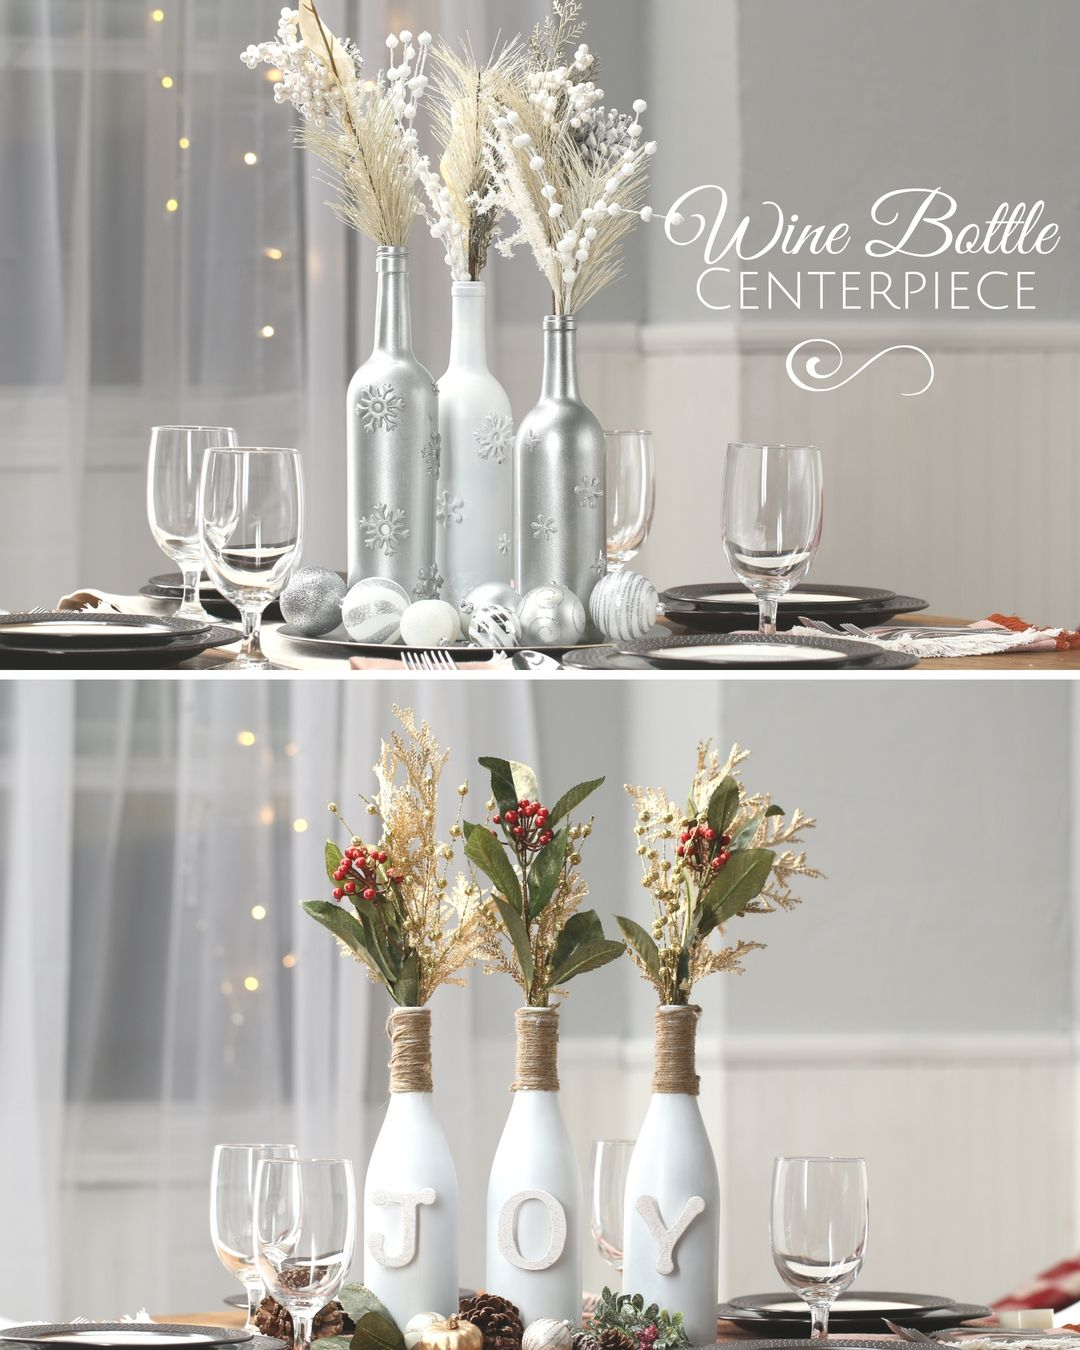 Wine Bottle Centerpiece Nifty Holidays & Parties